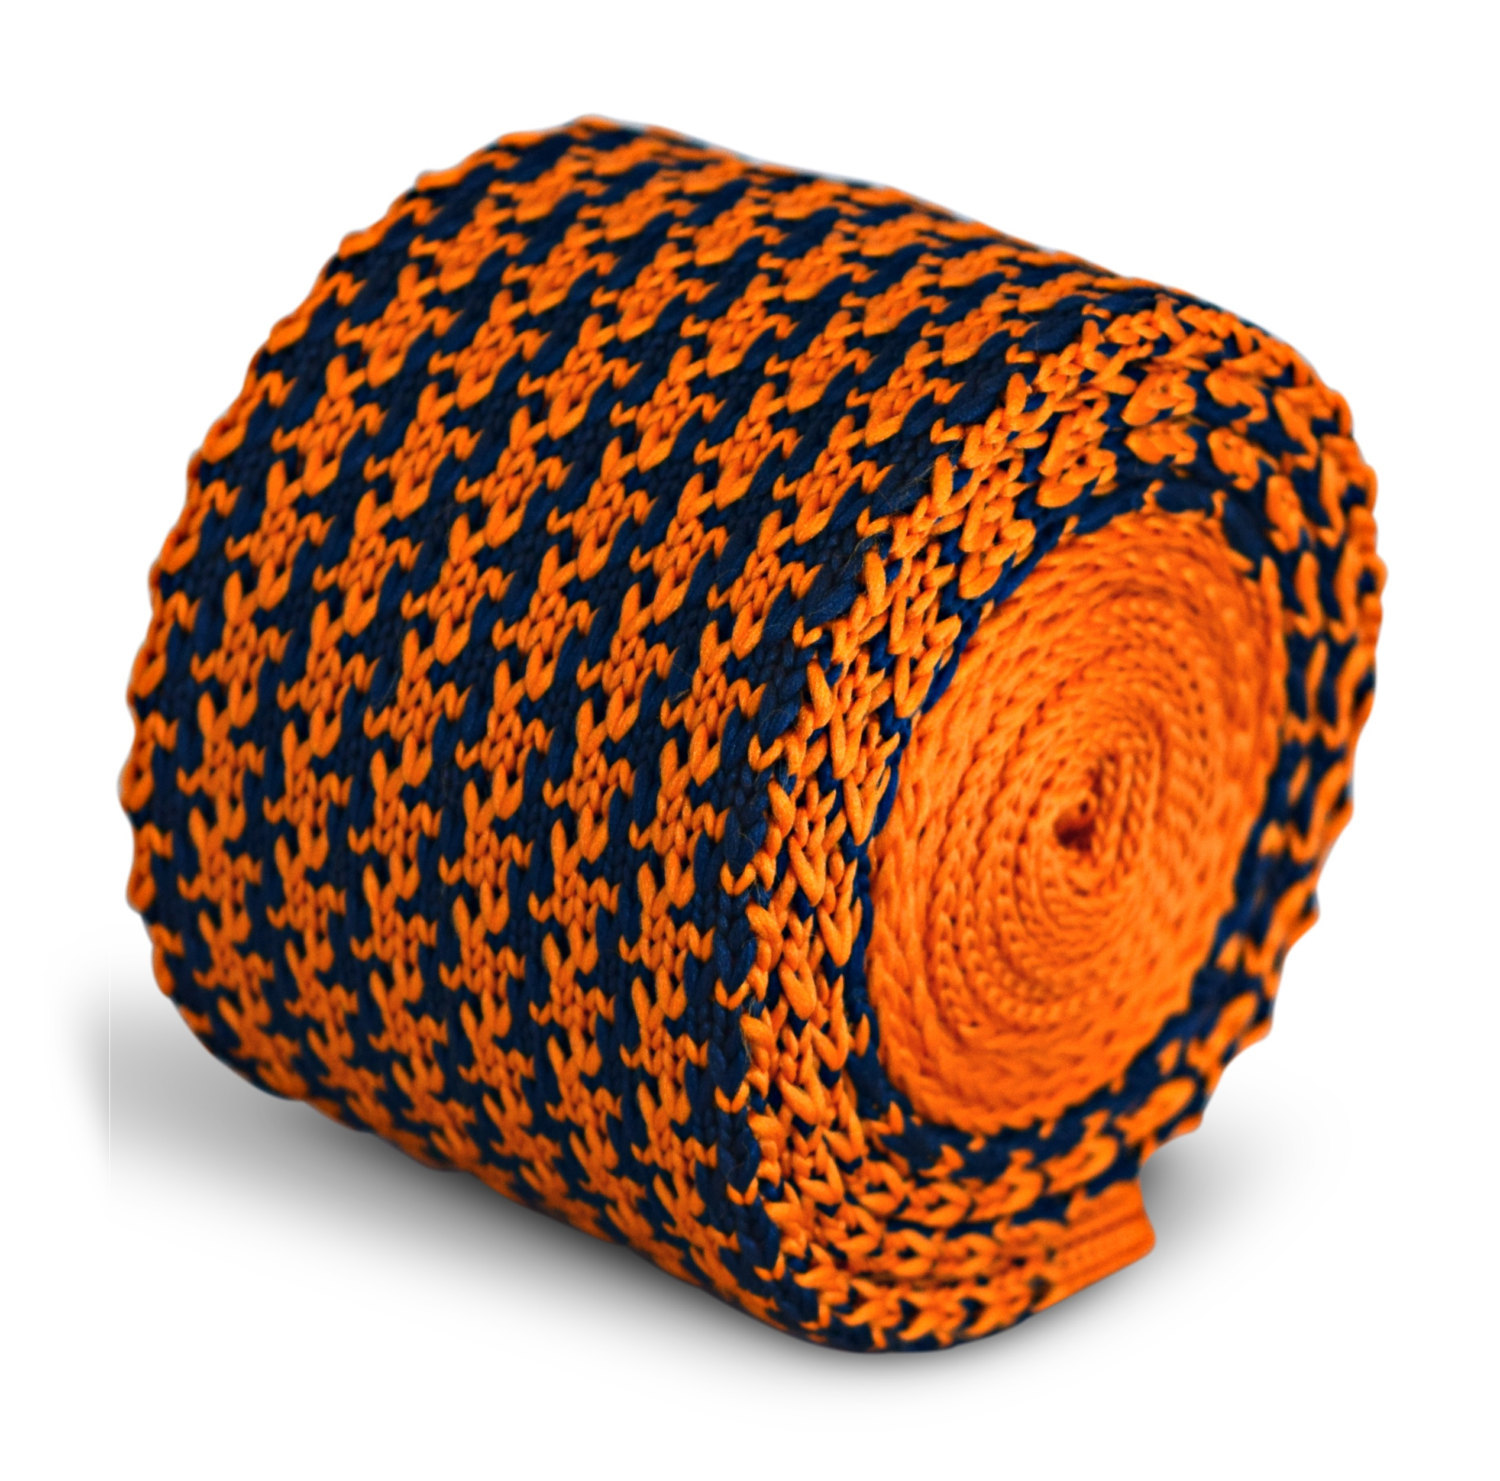 orange and navy blue dogstooth knitted skinny tie by Frederick Thomas FT3287